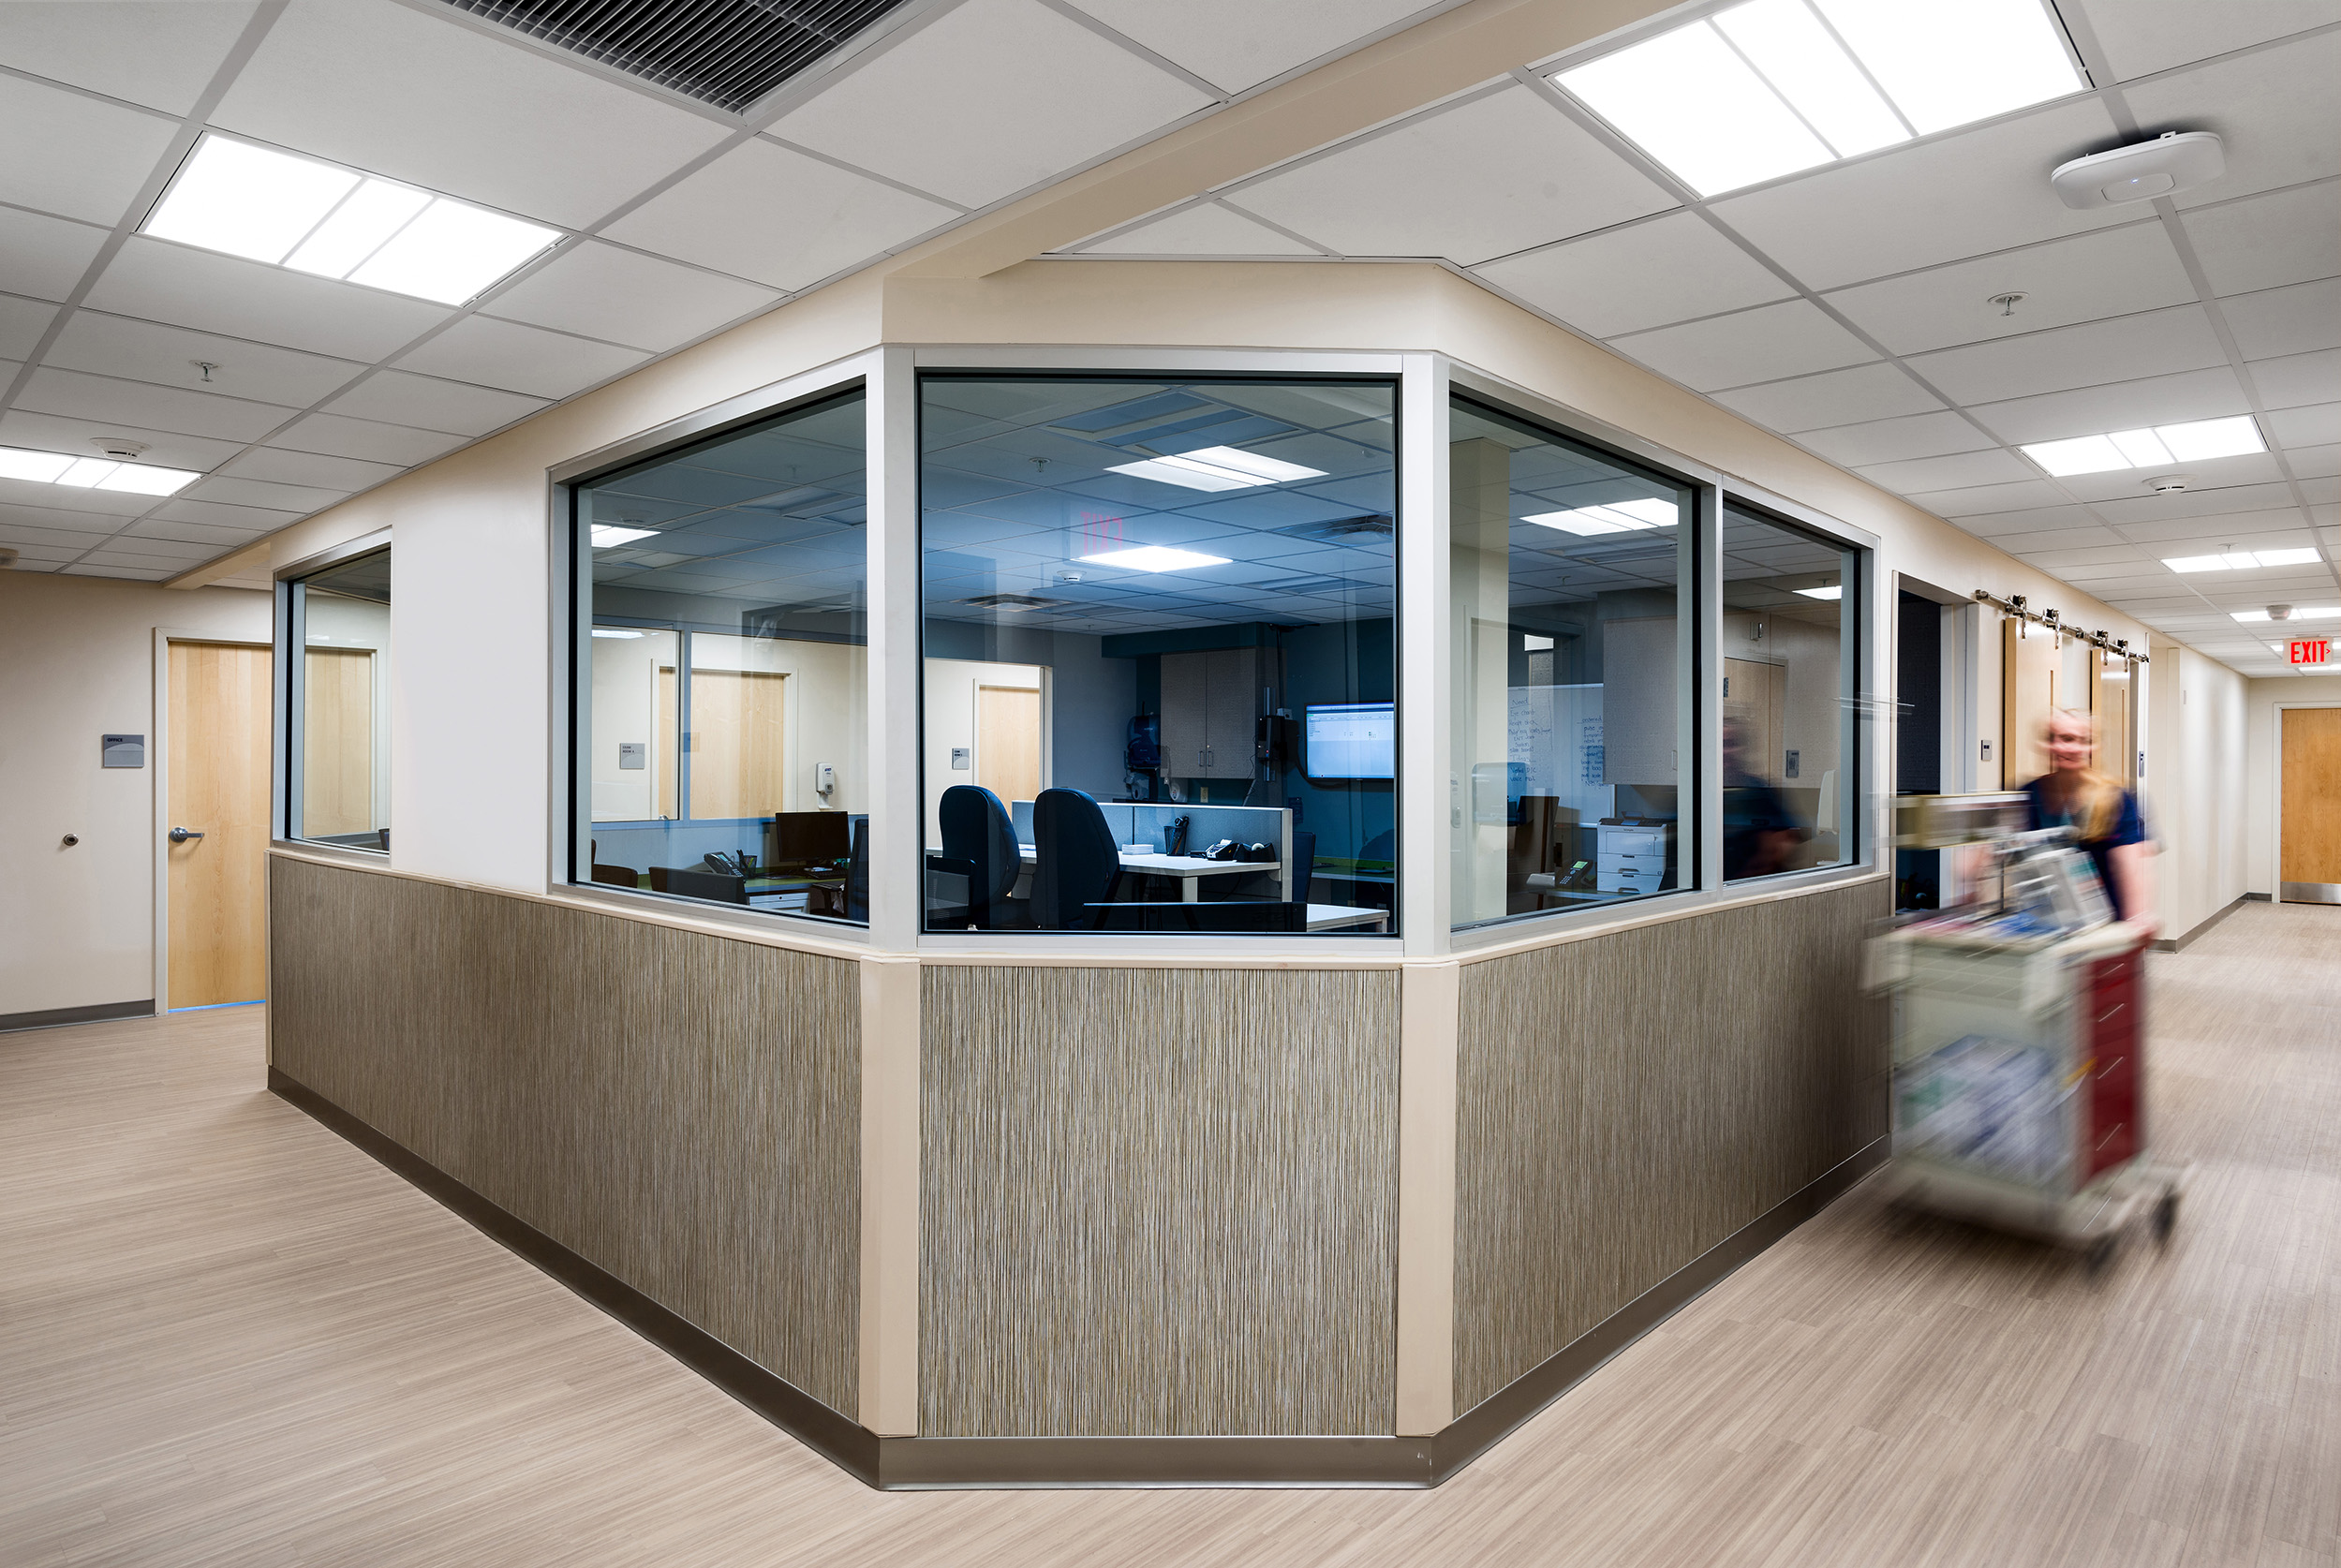 Provider bullpen centrally located with full visibility of exam rooms